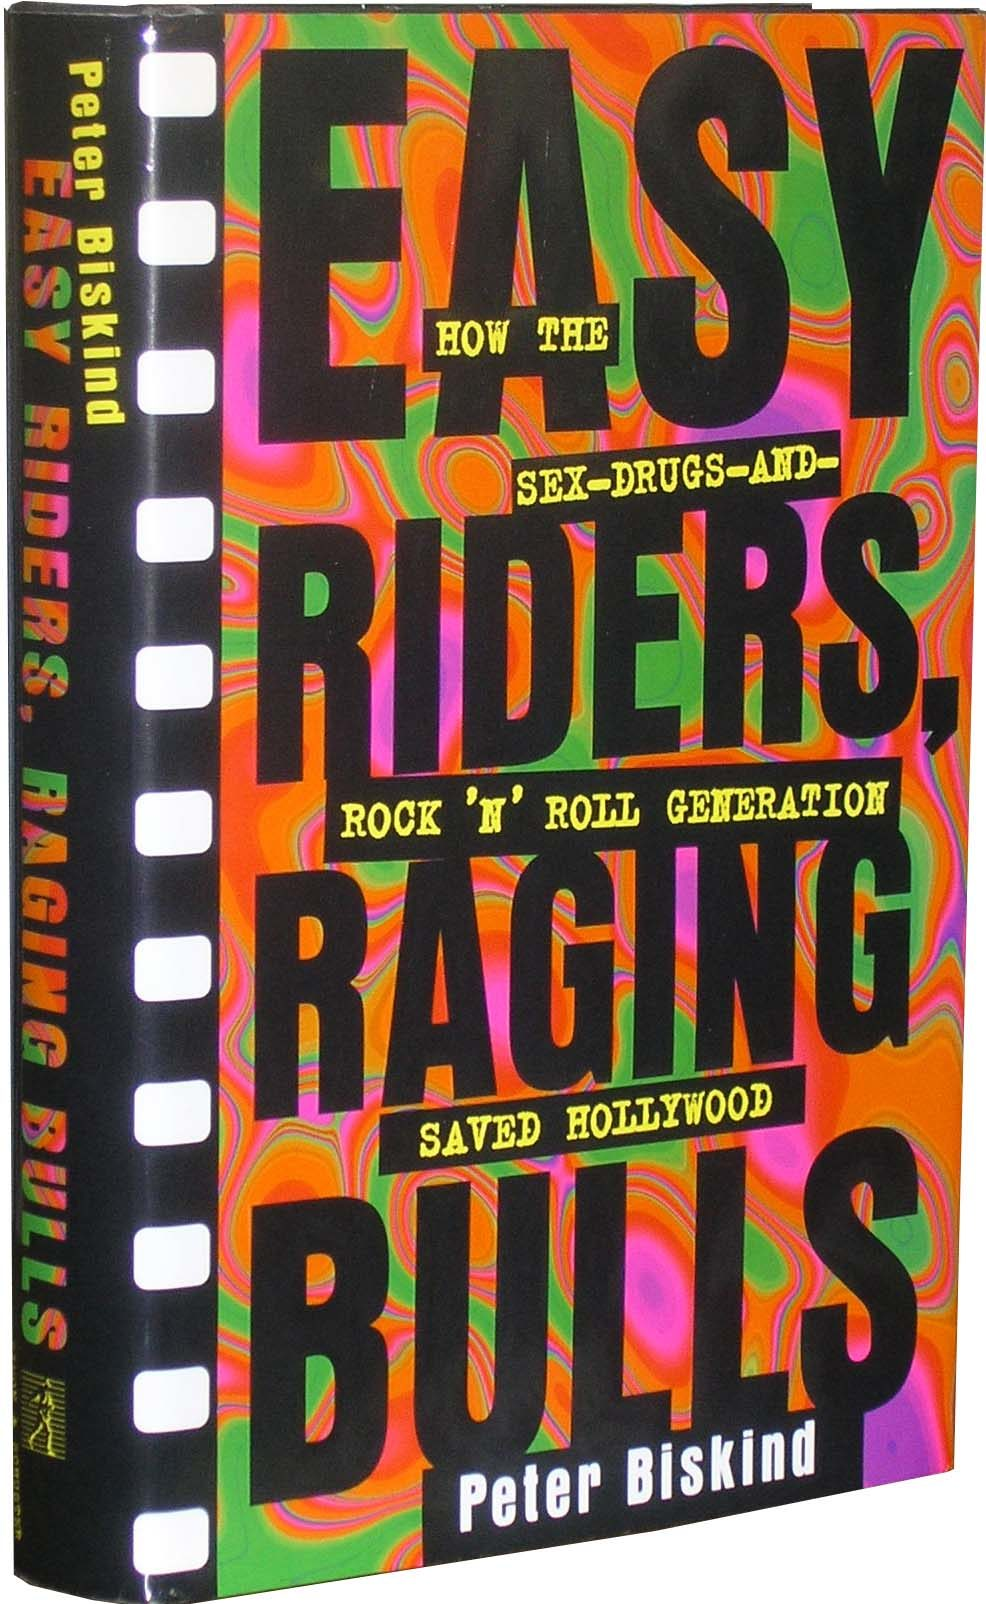 Easy Riders, Raging Bulls book cover - thescriptblog.com